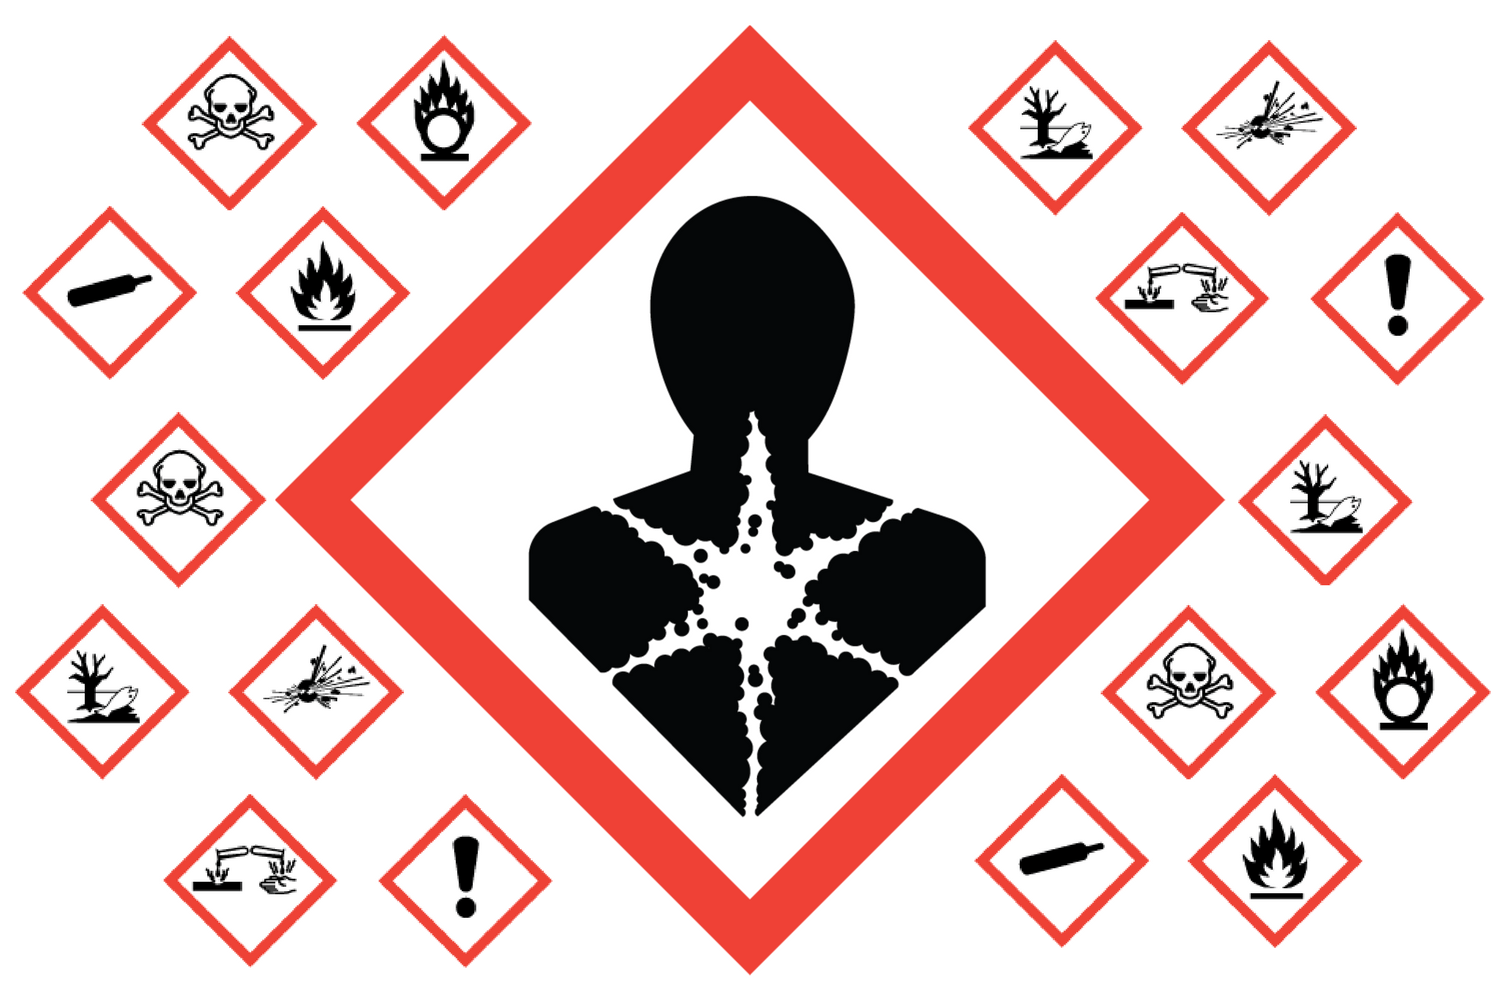 Red outlined diamonds showing different types of hazards, such as fire, poison, and corrosion.